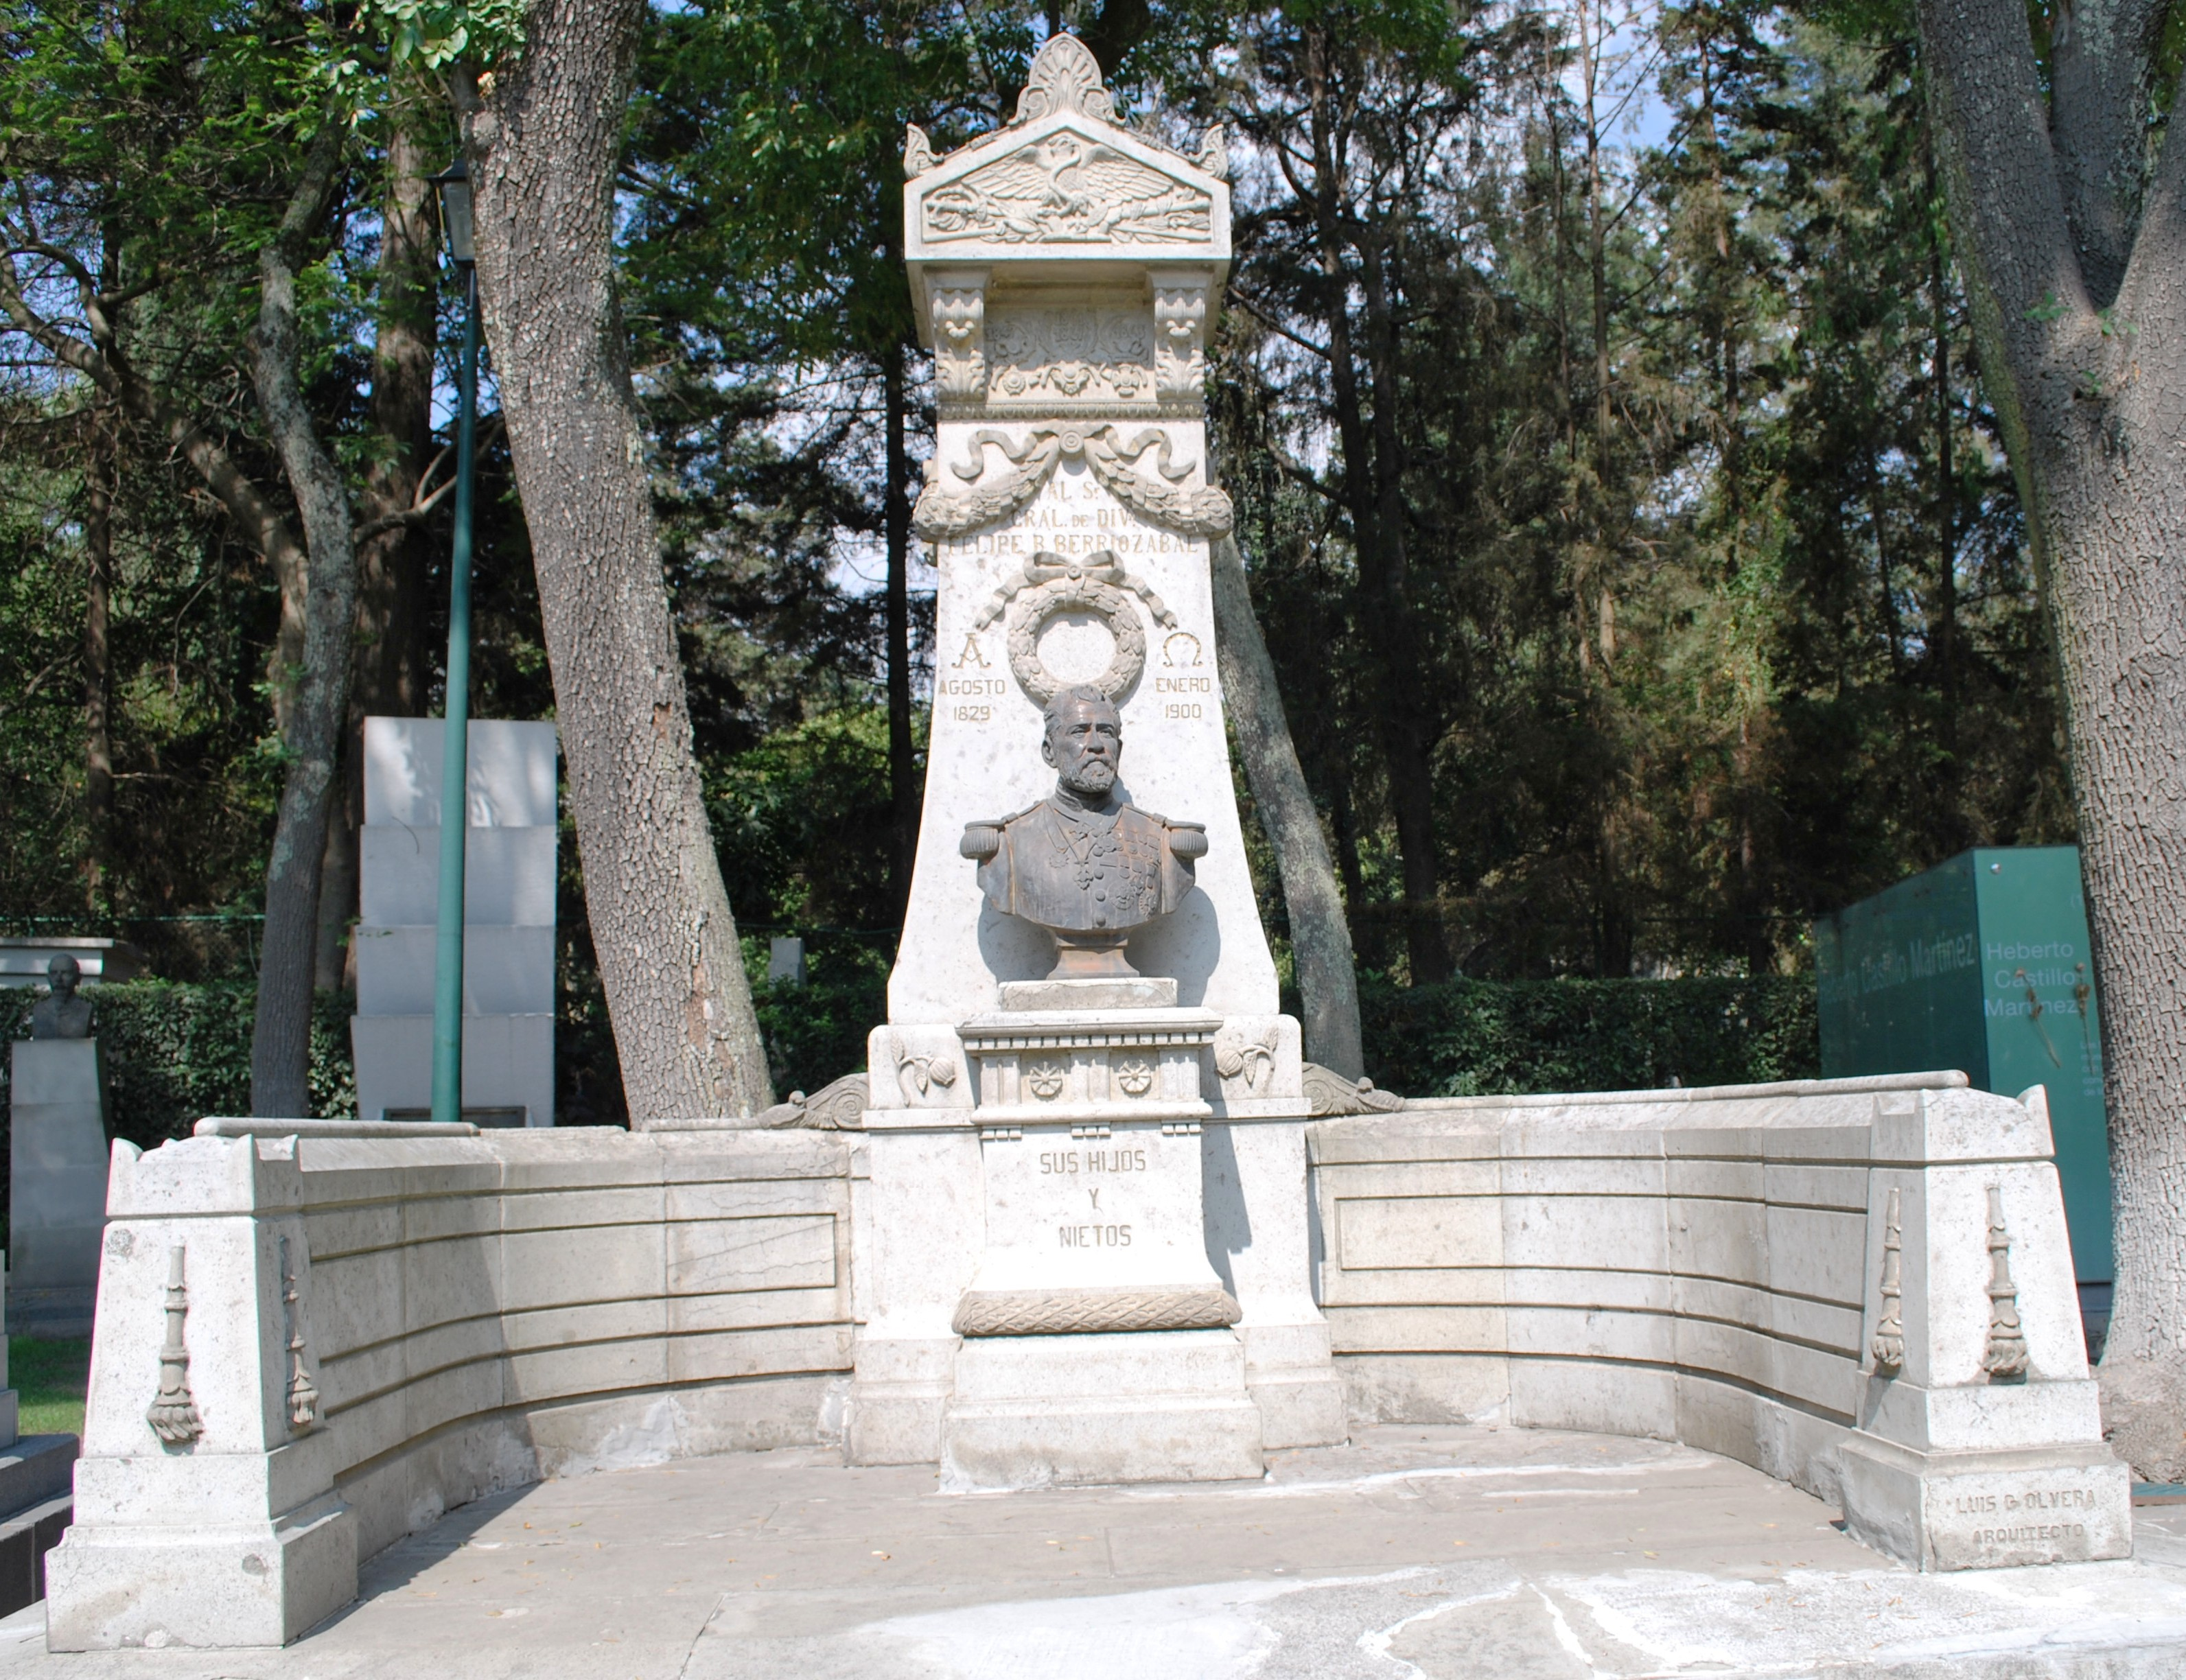 a biography of benito juarez a mexican leader Benito juárez was a national hero and president of mexico, who, for three years (1864-'67), fought against foreign occupation under maximilian born on march 21, 1806, in san pablo guelatao .